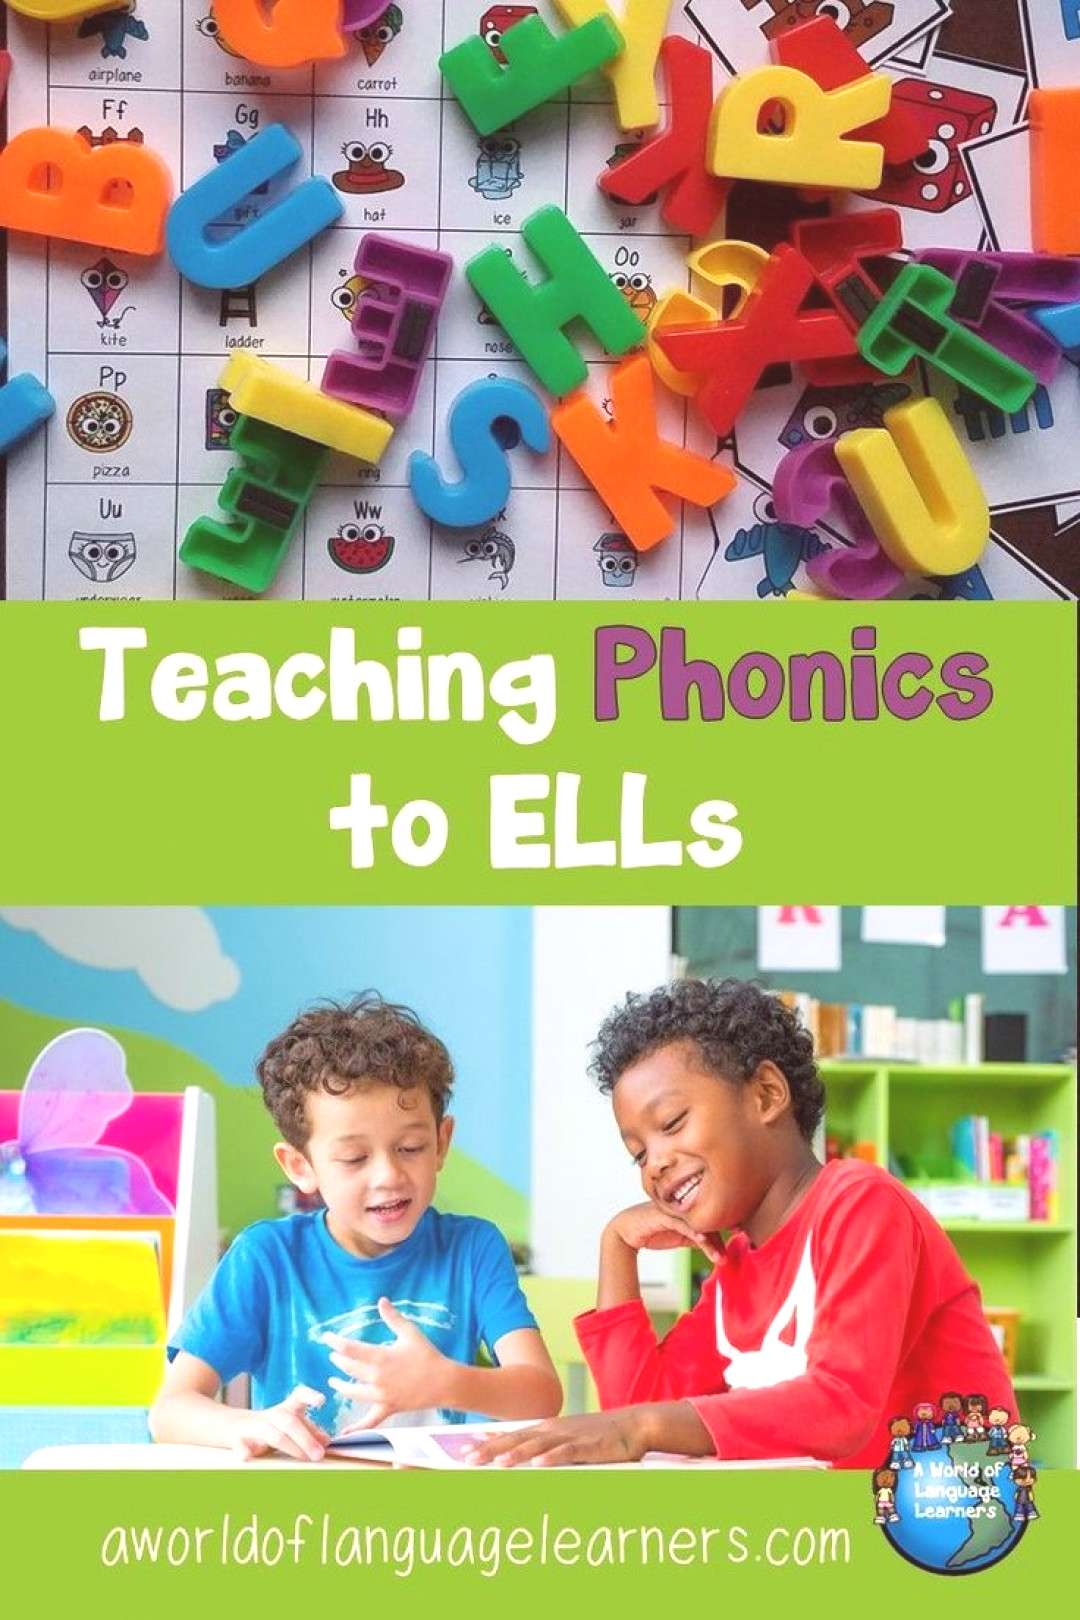 Phonics for ELLs - A World of Language Learners Phonics are an important part of teaching ELLs how